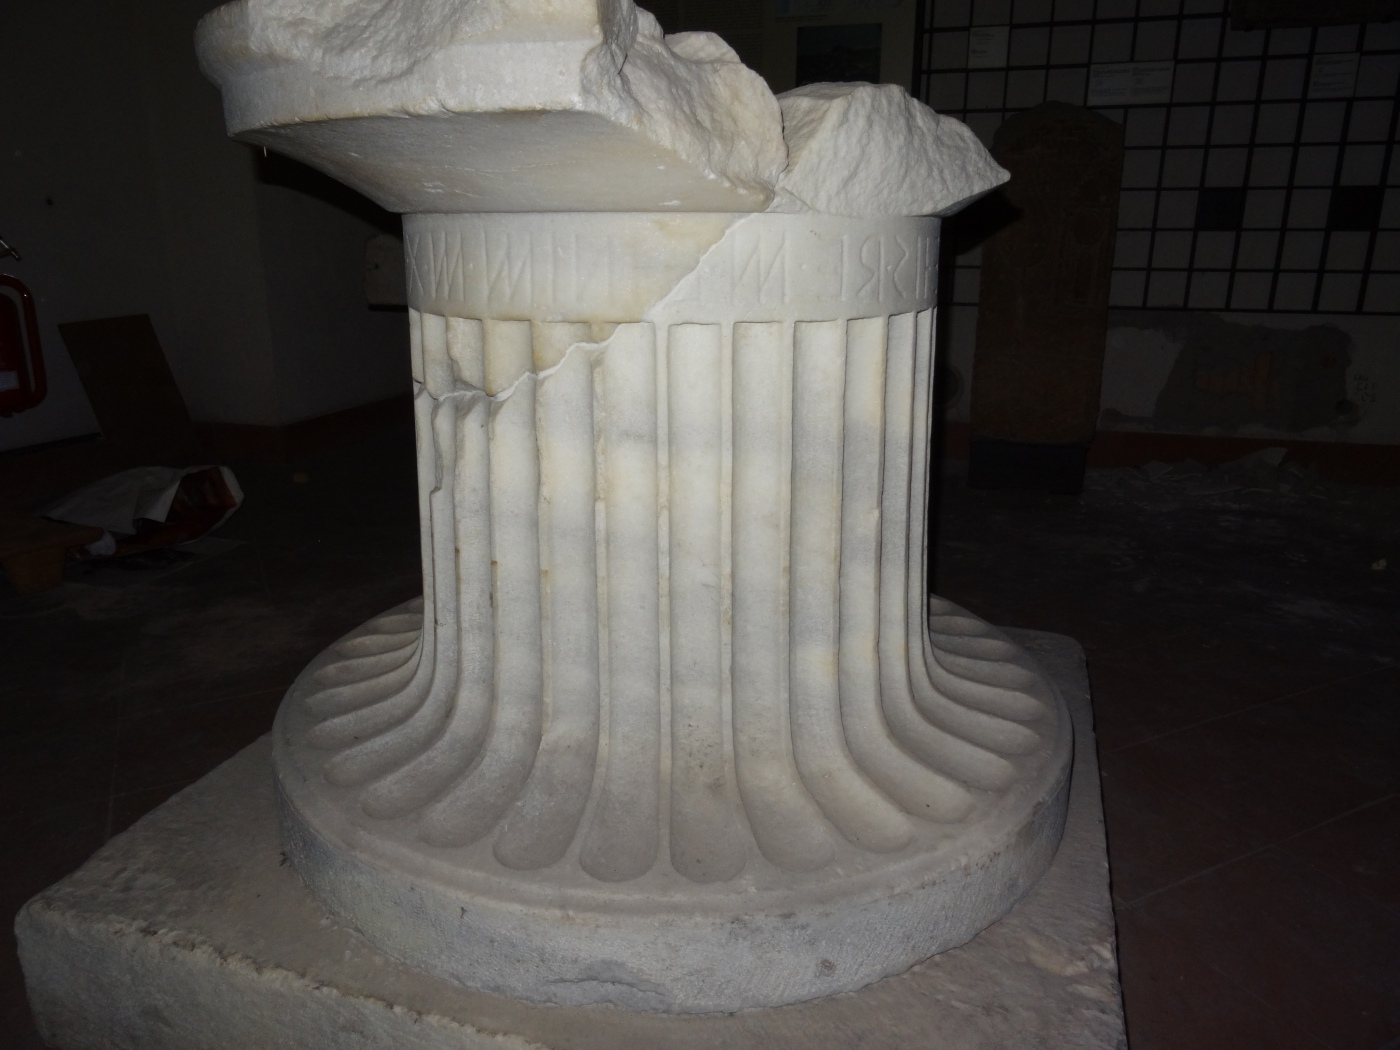 Museo Archeologico Nazionale.Reblogged The Epigraphic Gallery Of The Museo Archeologico